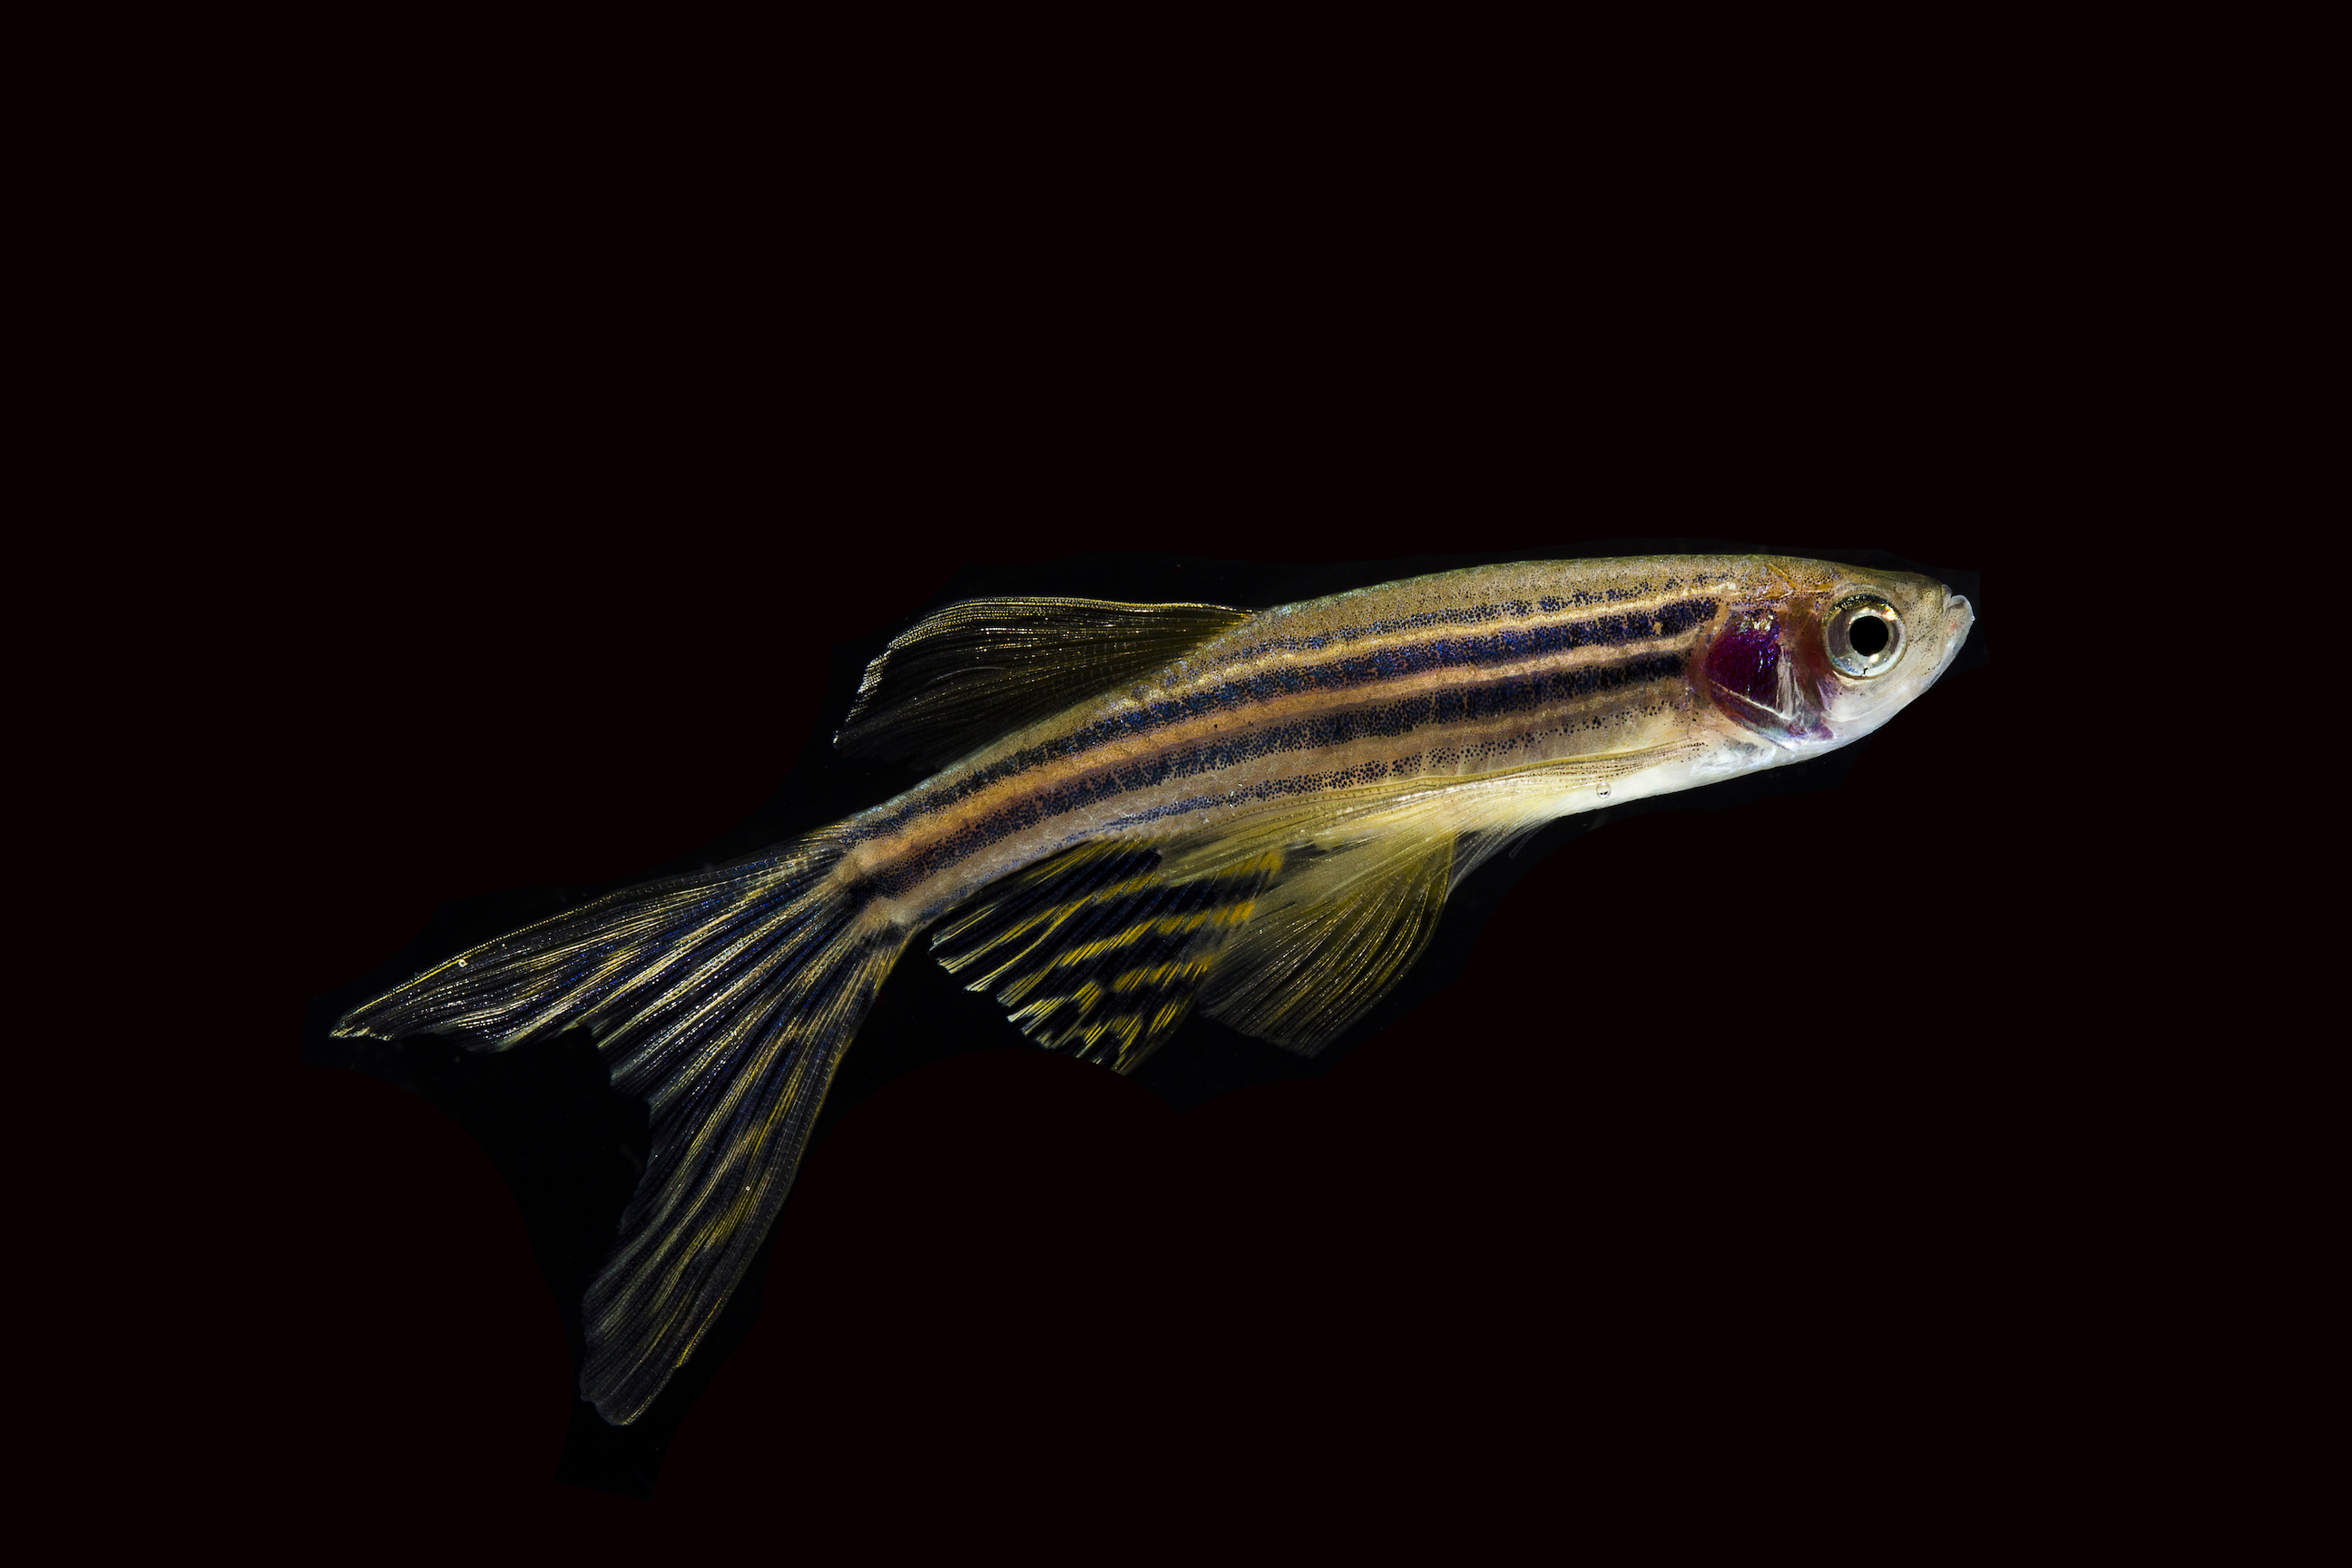 A new study from the University of Utah Health used zebrafish to examine addiction and the corresponding neural responses in the brain.